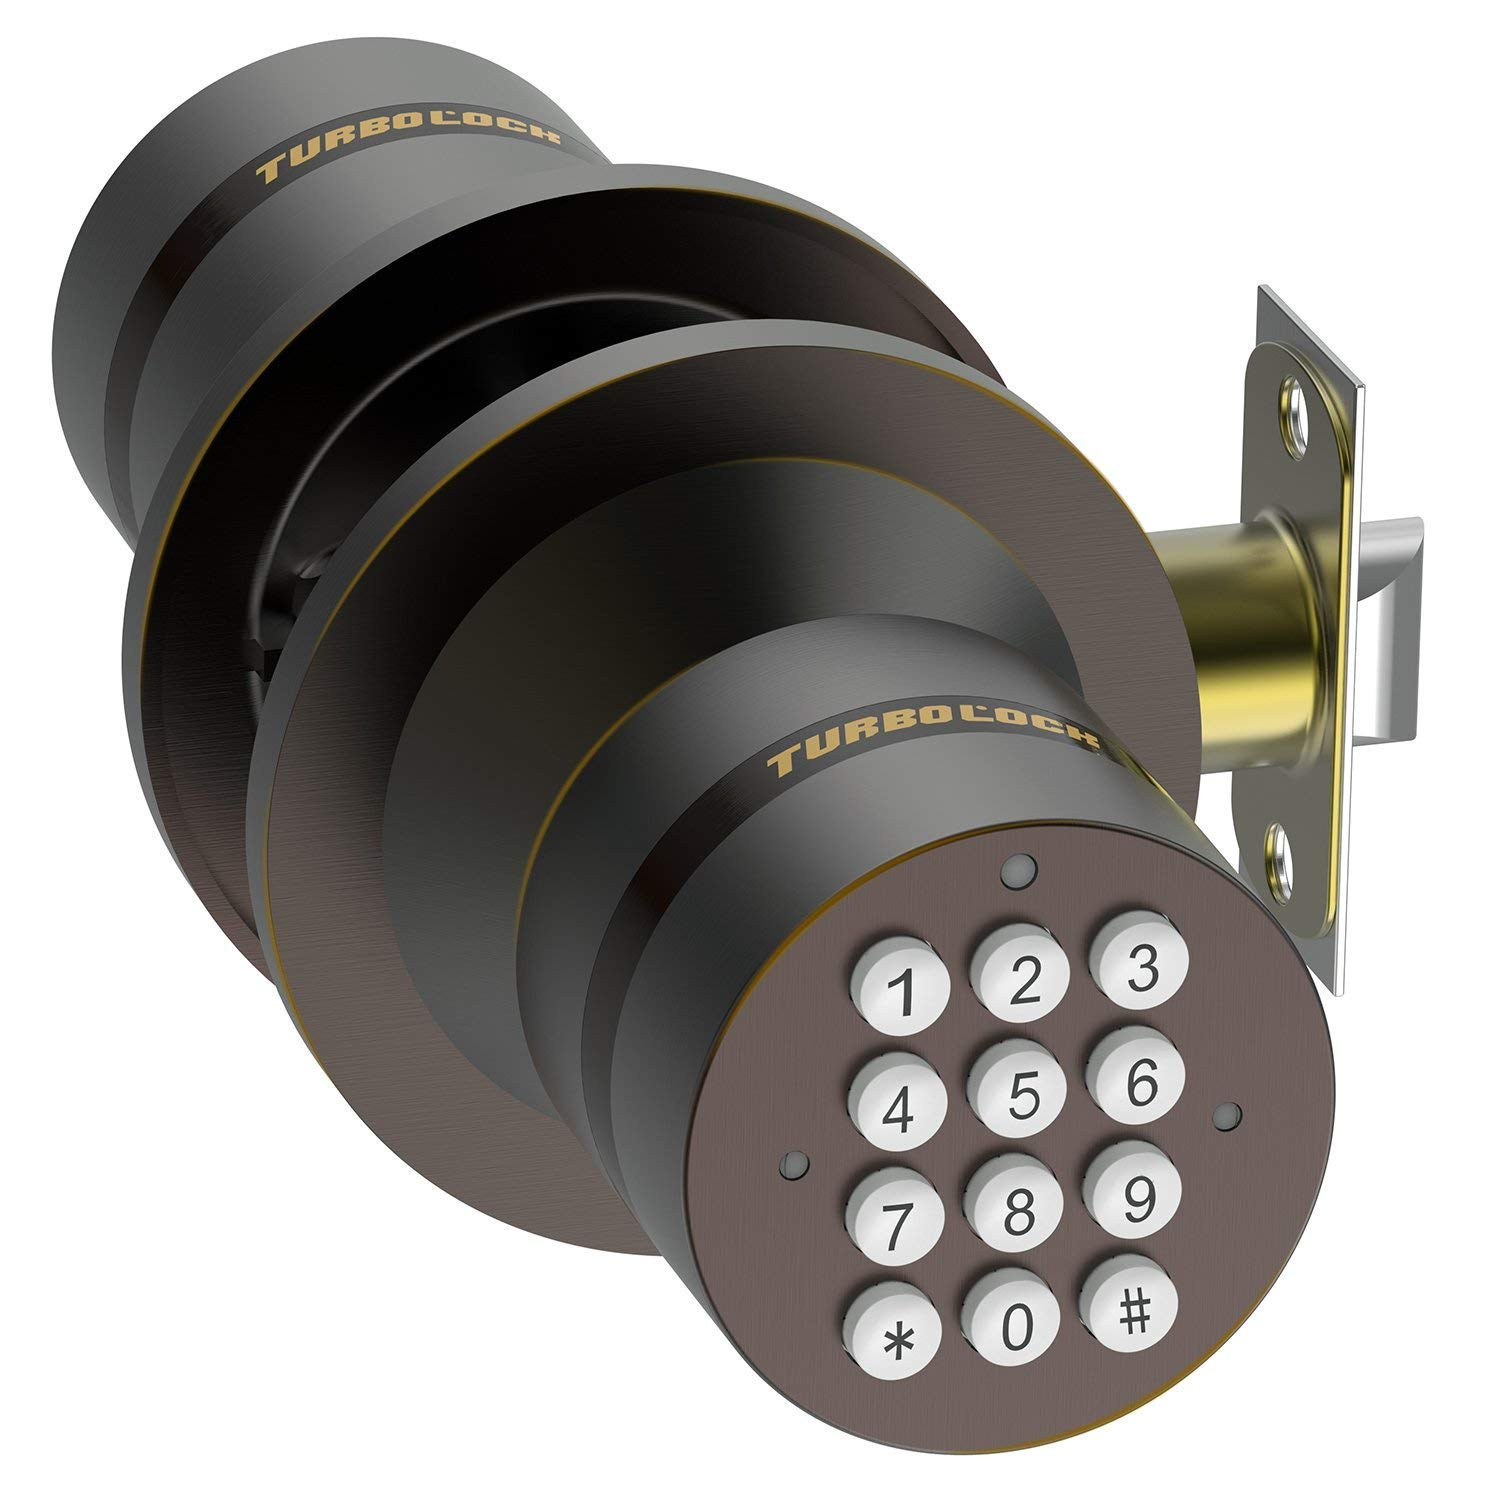 TurboLock TL-99 Bluetooth Smart Lock for Keyless Entry & Live Monitoring – Send & Delete eKeys w/App on Demand (Bronze)